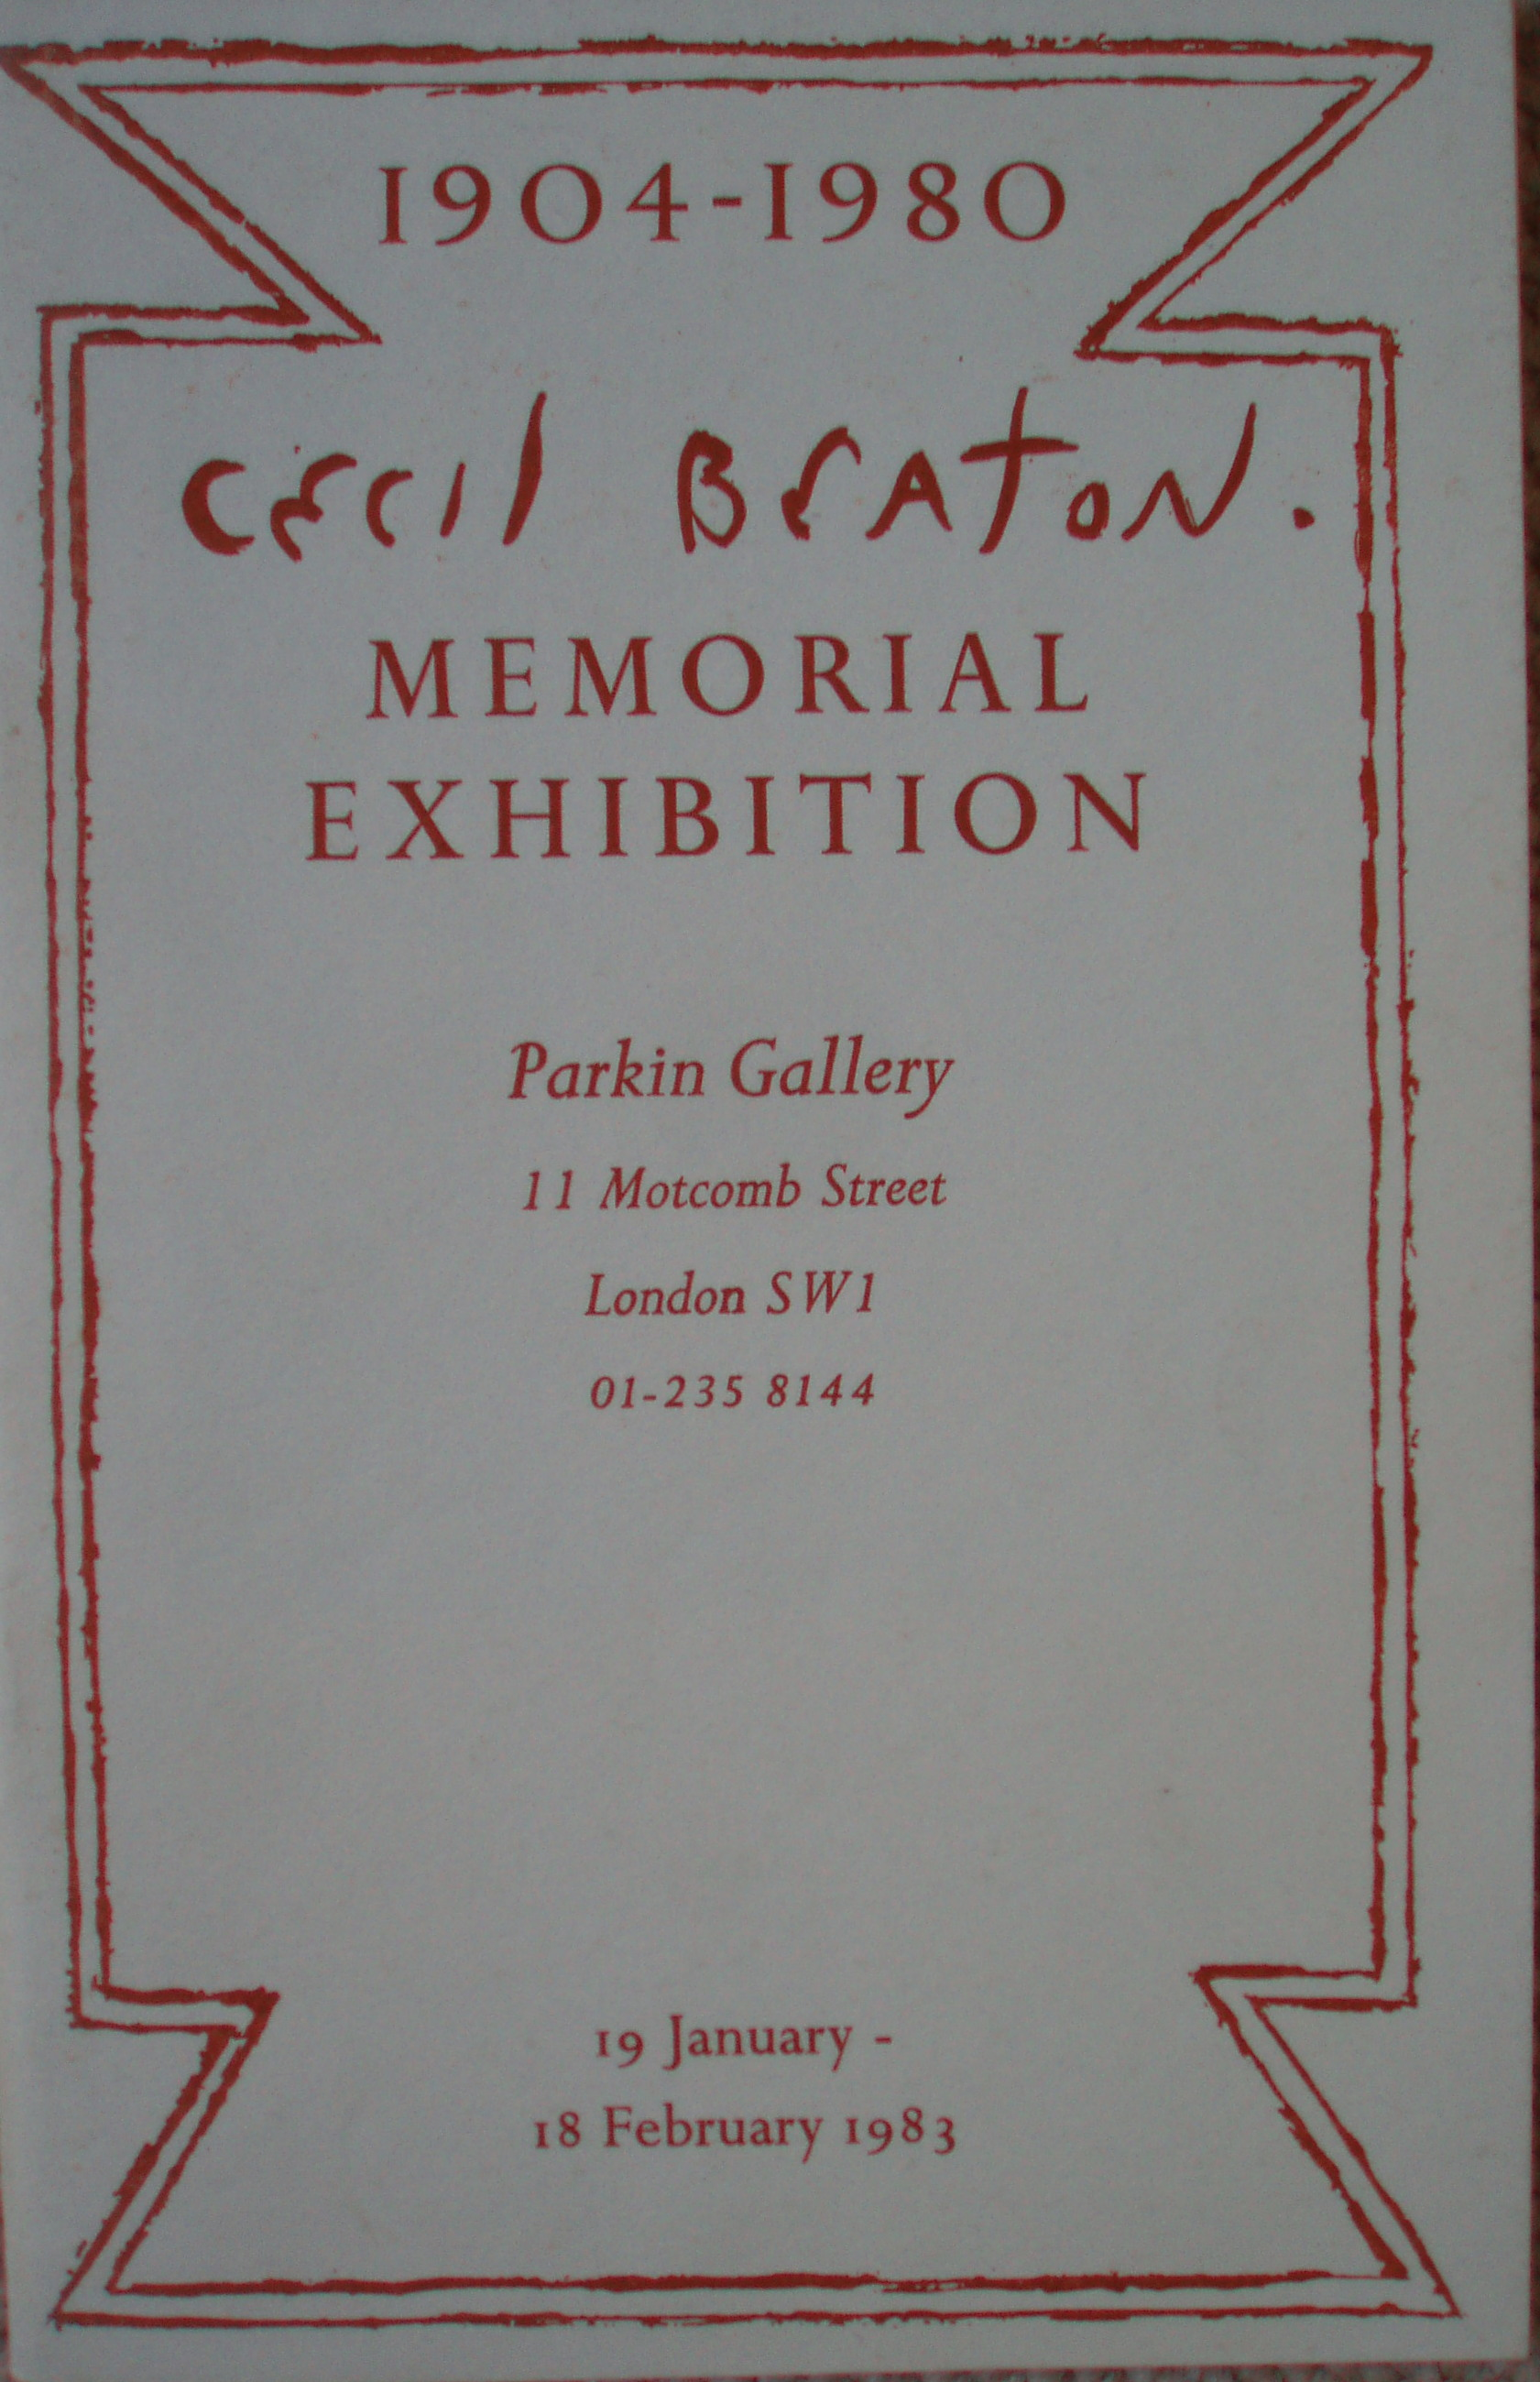 Cecil Beaton Memorial Exhibition